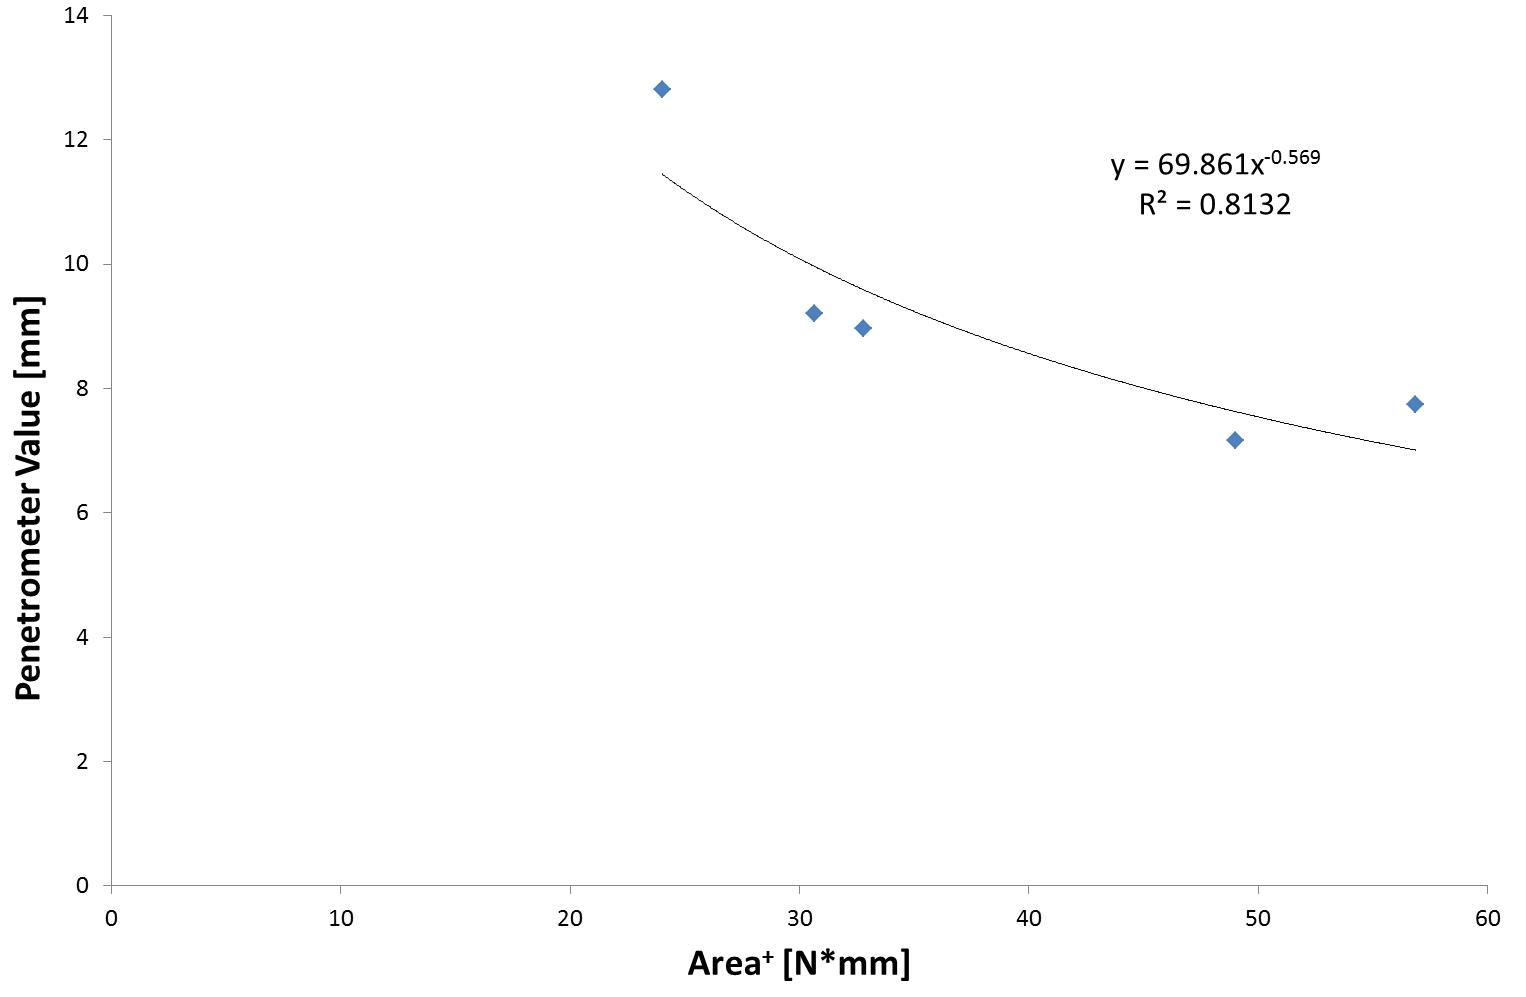 Figure 7. Power-fit correlation between penetrometer values at 10s and area for 45° cone penetration method